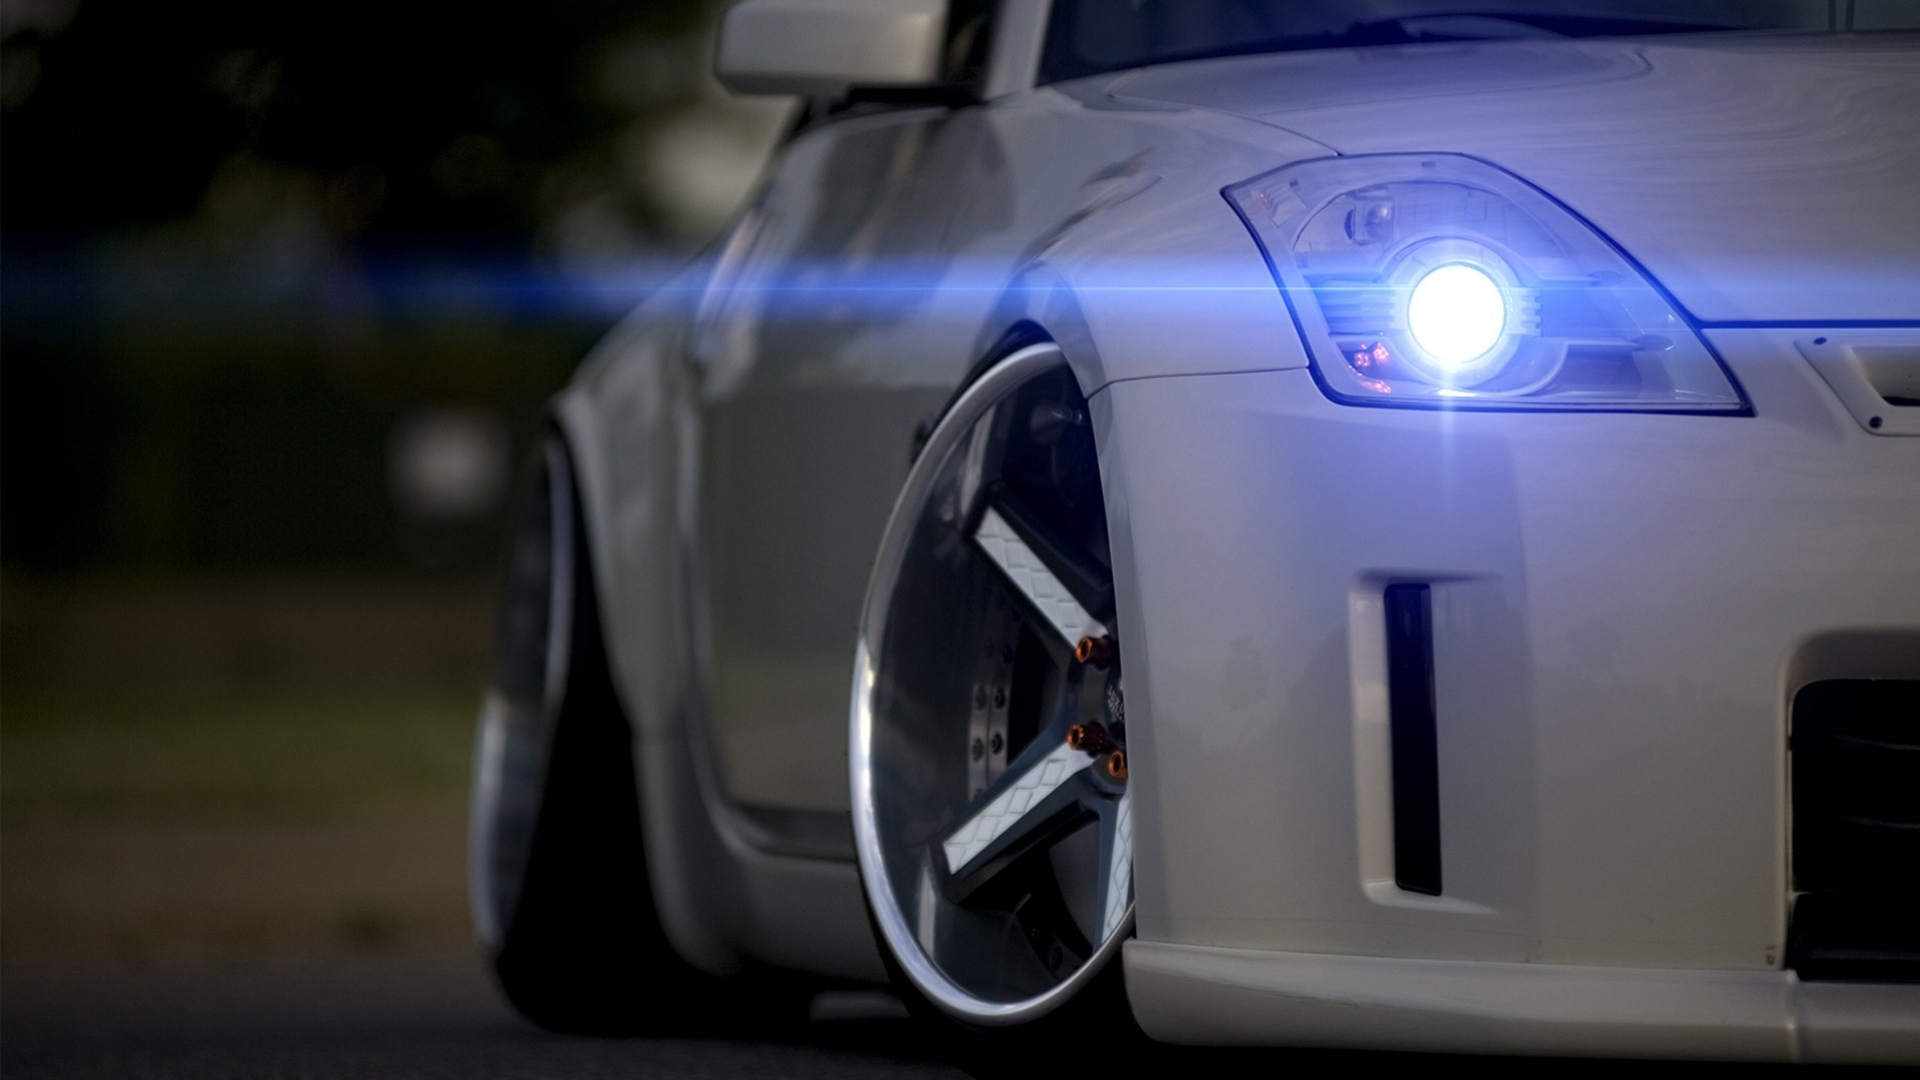 1920x1080 - Nissan 350Z Wallpapers 29